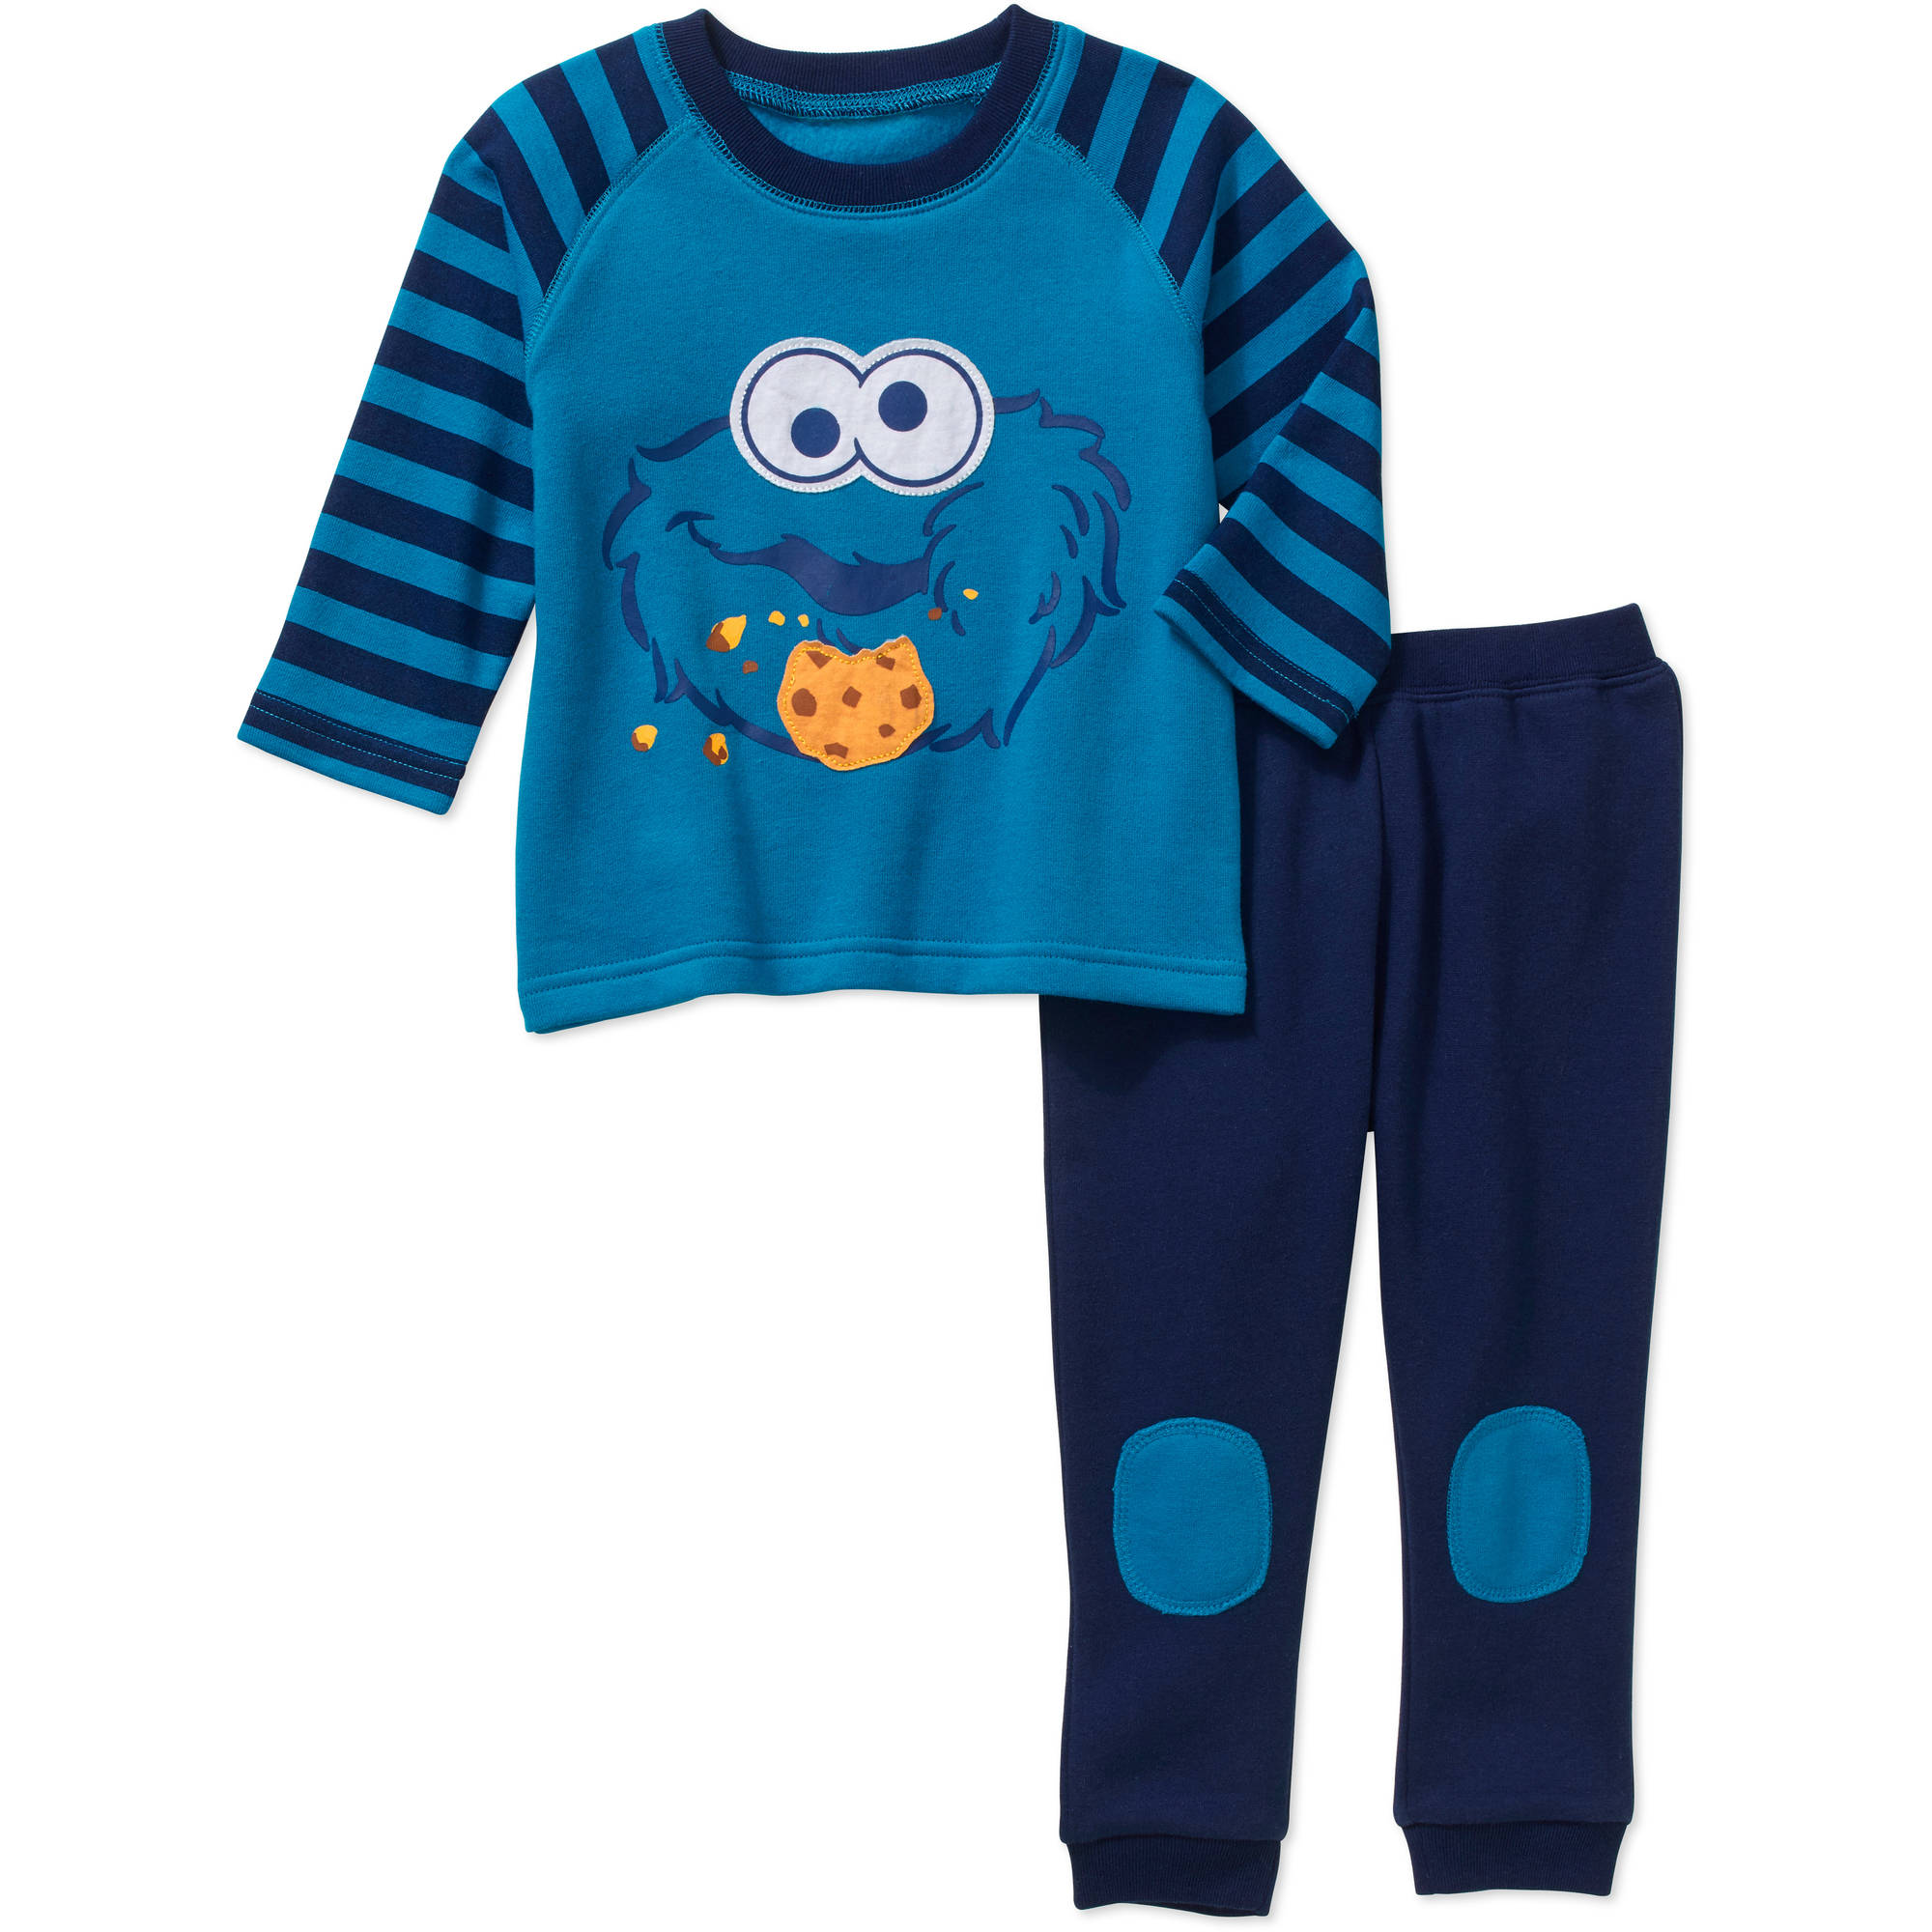 Cookie Monster Newborn Baby Boy Fleece Top and Pant 2 pc set